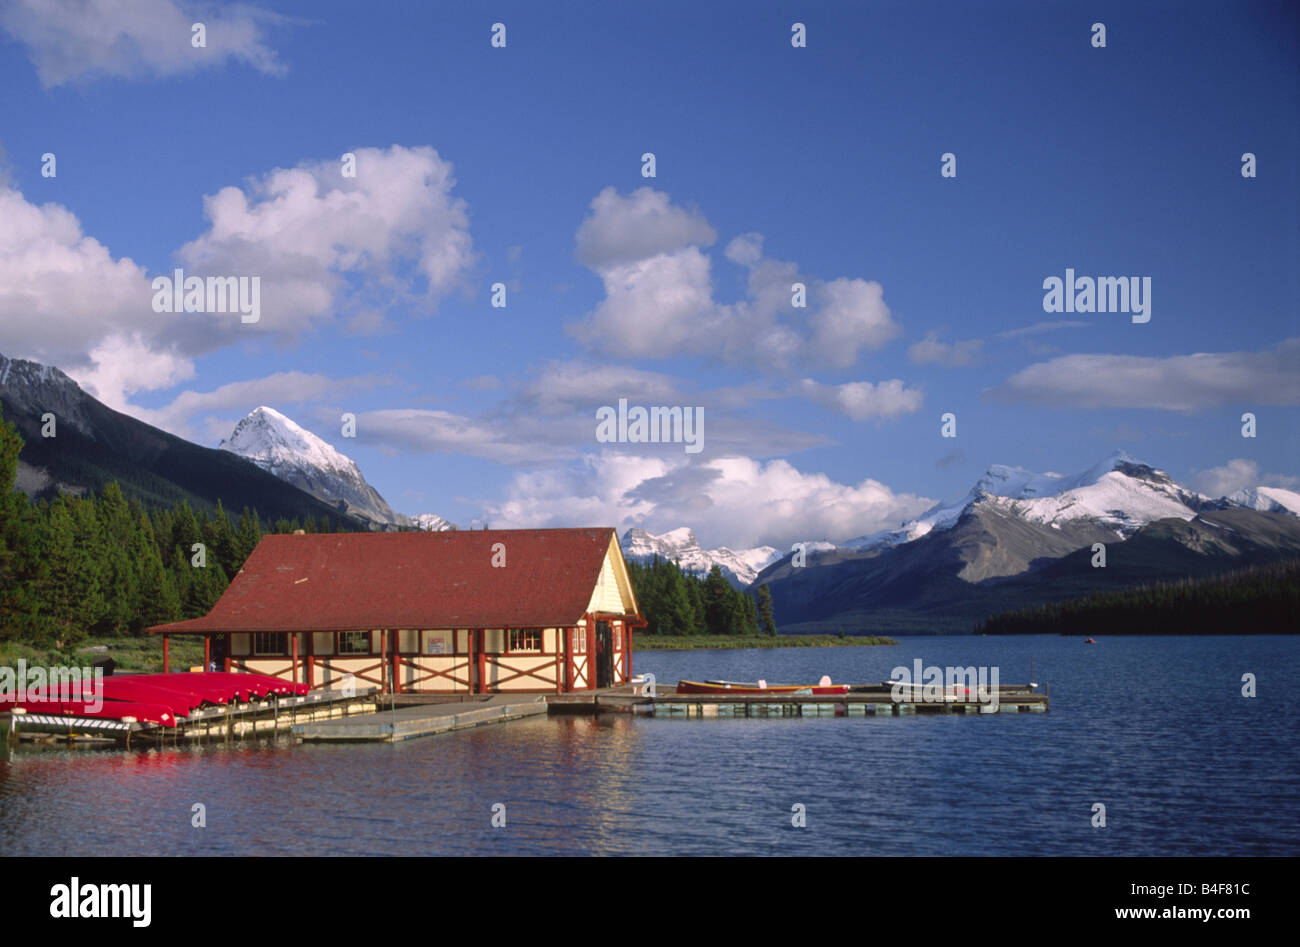 Boat house on Maligne Lake in Jasper National Park, Canadian Rockies - Stock Image